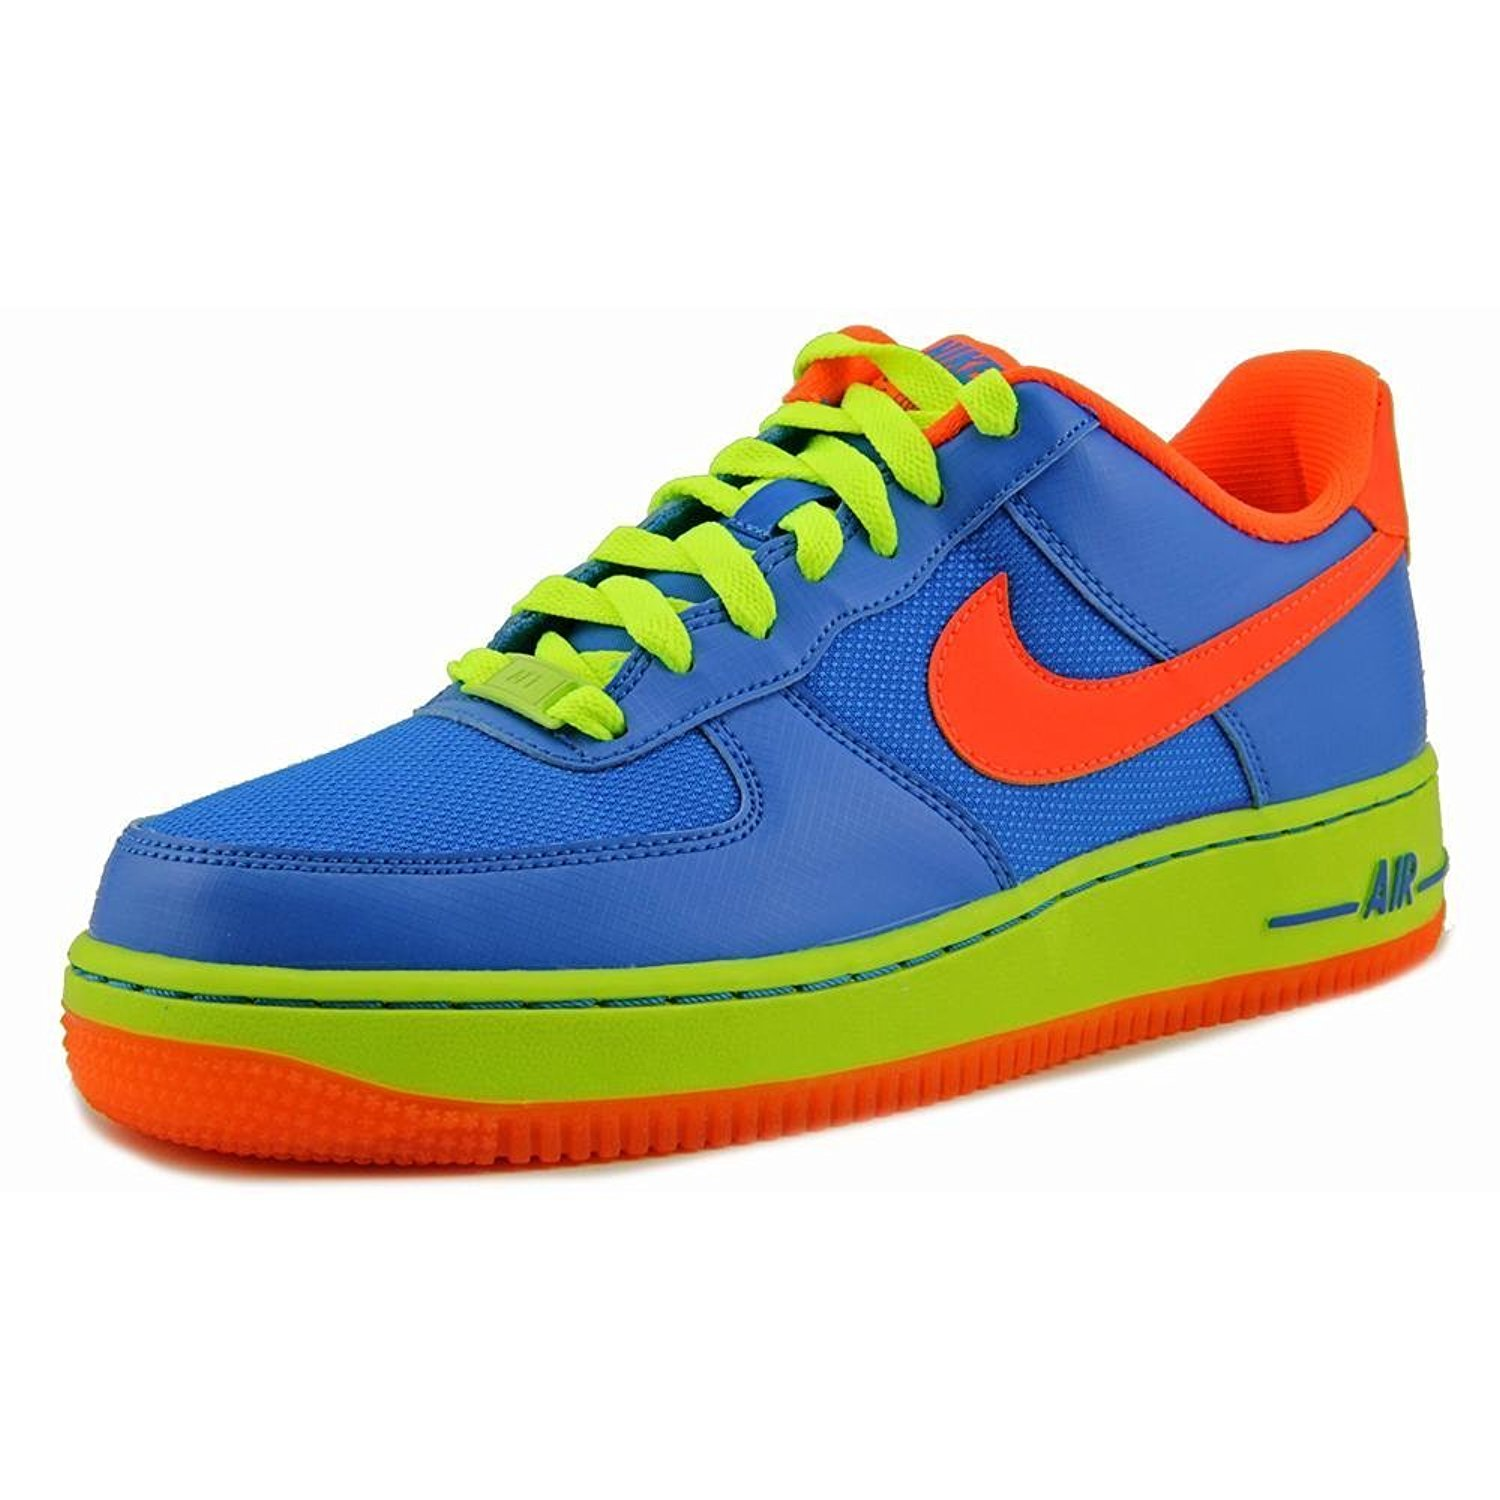 quality design 77409 5a9b0 Get Quotations · NIKE BOYS AIR FORCE ONE SNEAKER Blue - Footwear Sneakers 5Y